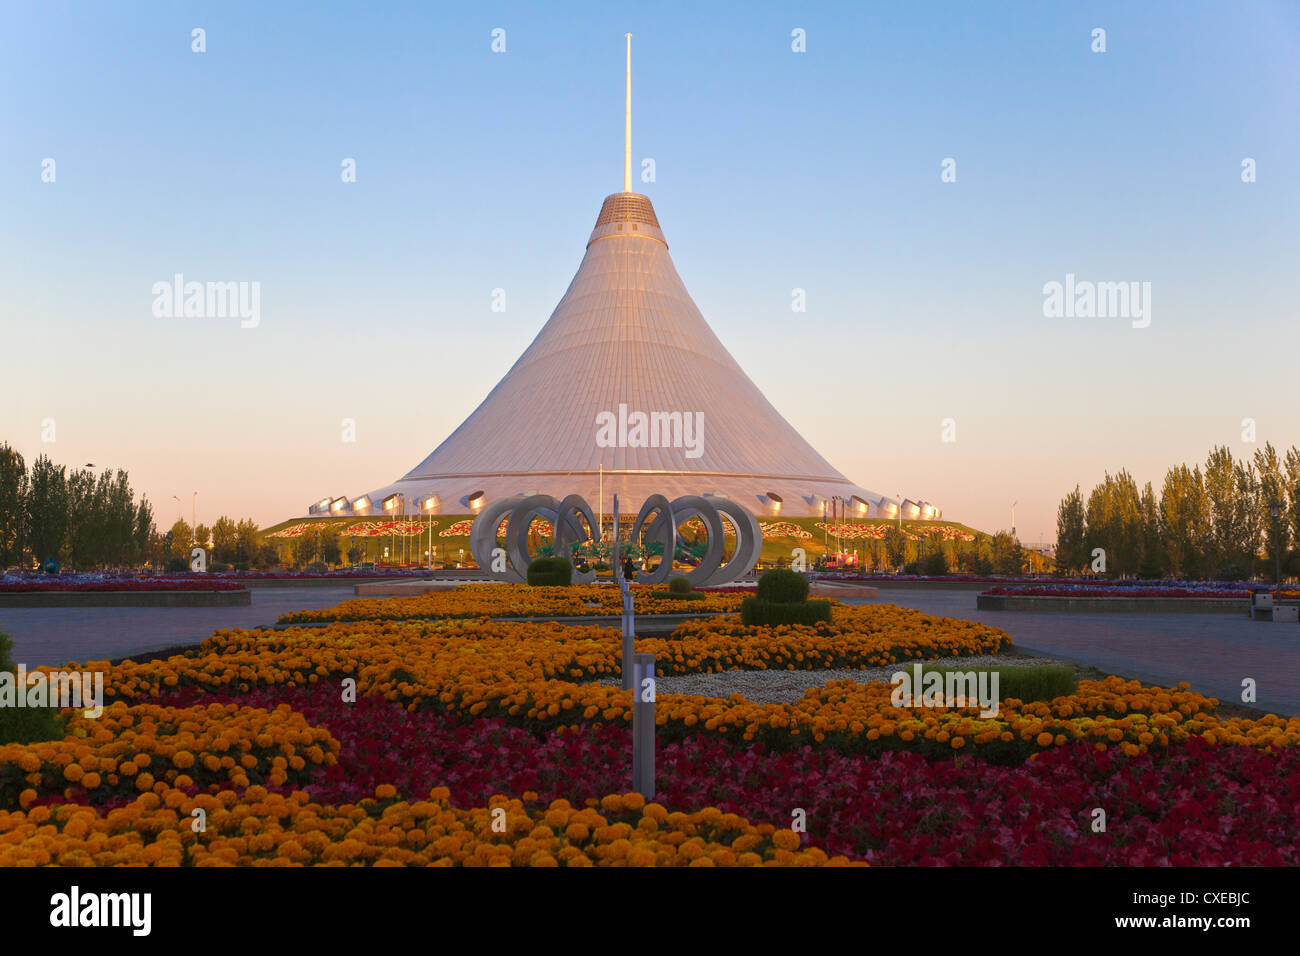 Khan Shatyr shopping and entertainment center, Astana, Kazakhstan, Central Asia, Asia - Stock Image